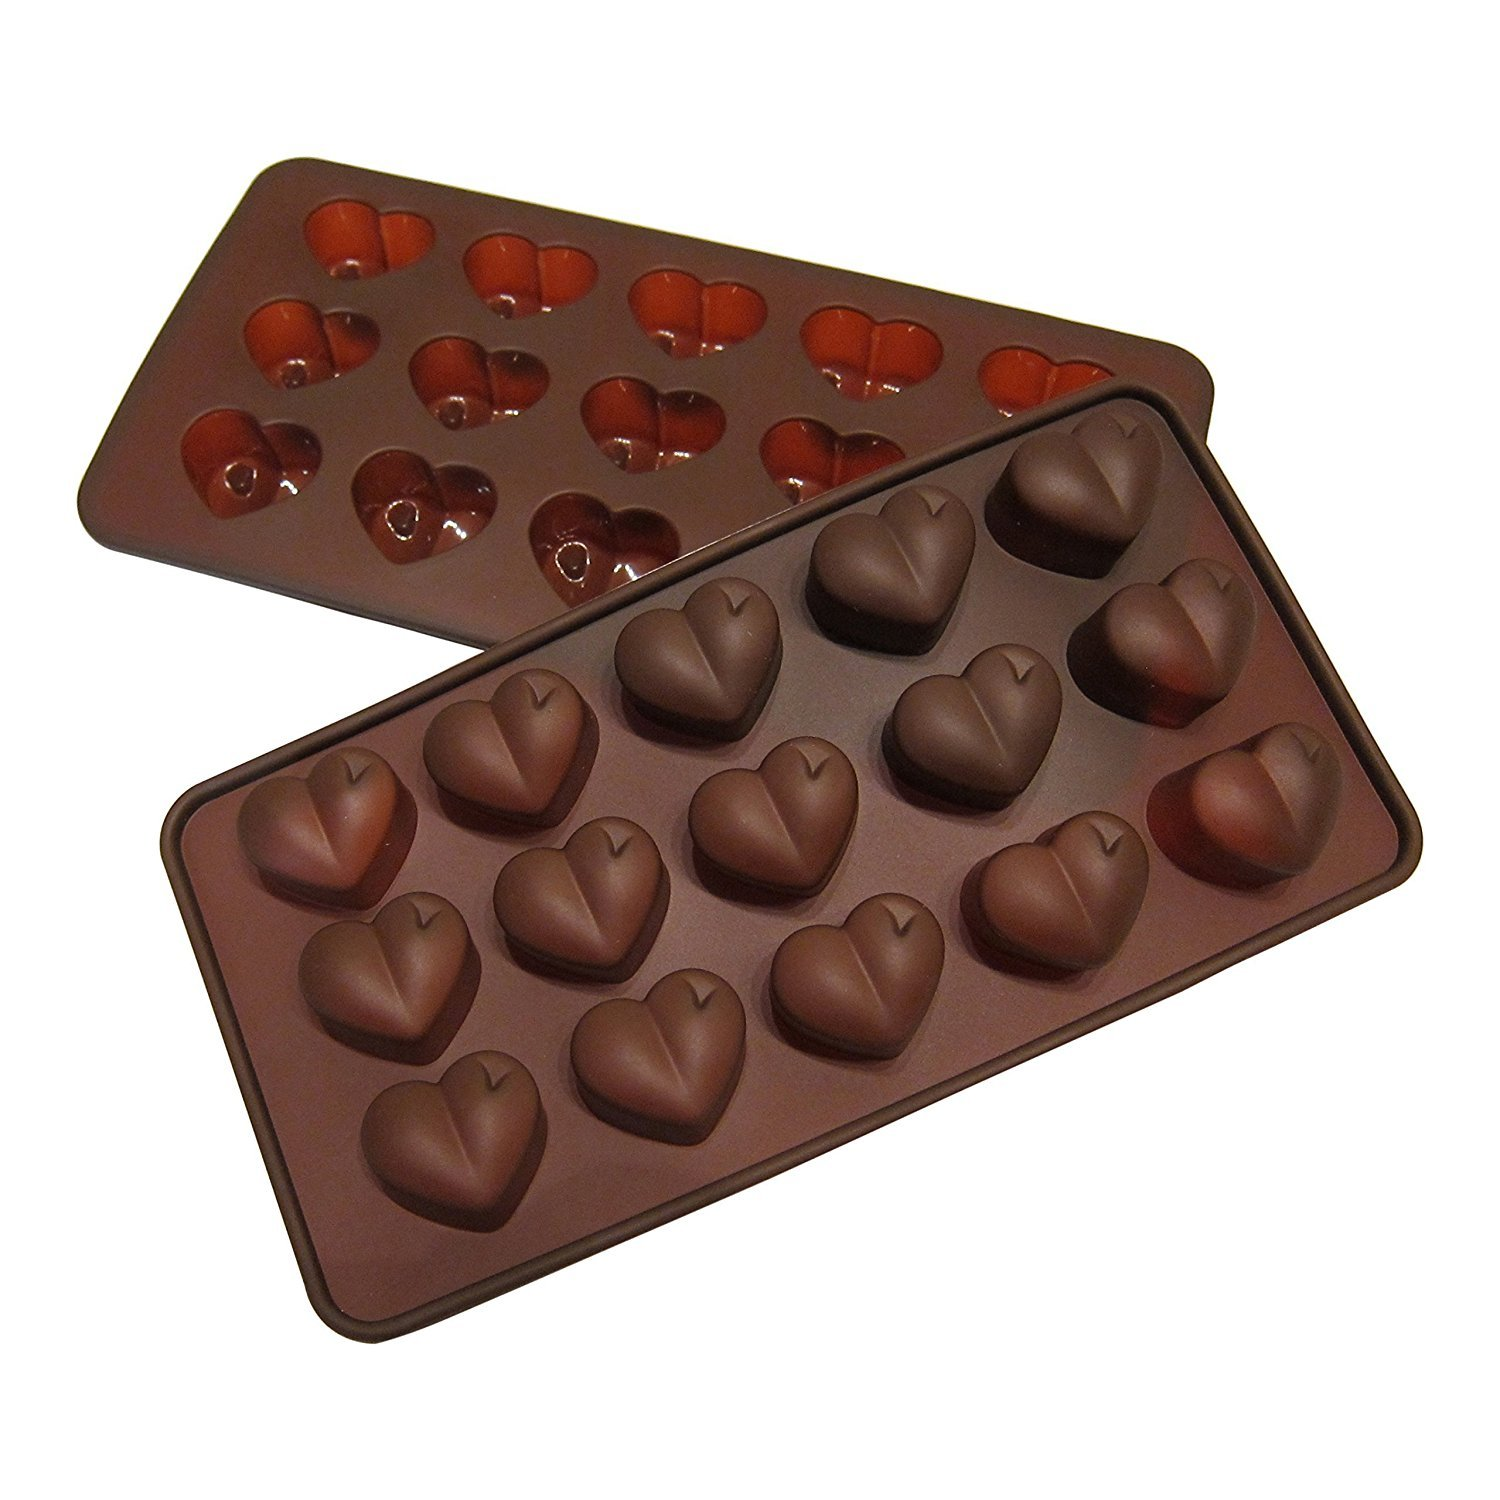 Amazon.com: Silicone Heart Mold Shaped BY Craviy, -Set of 2 ...